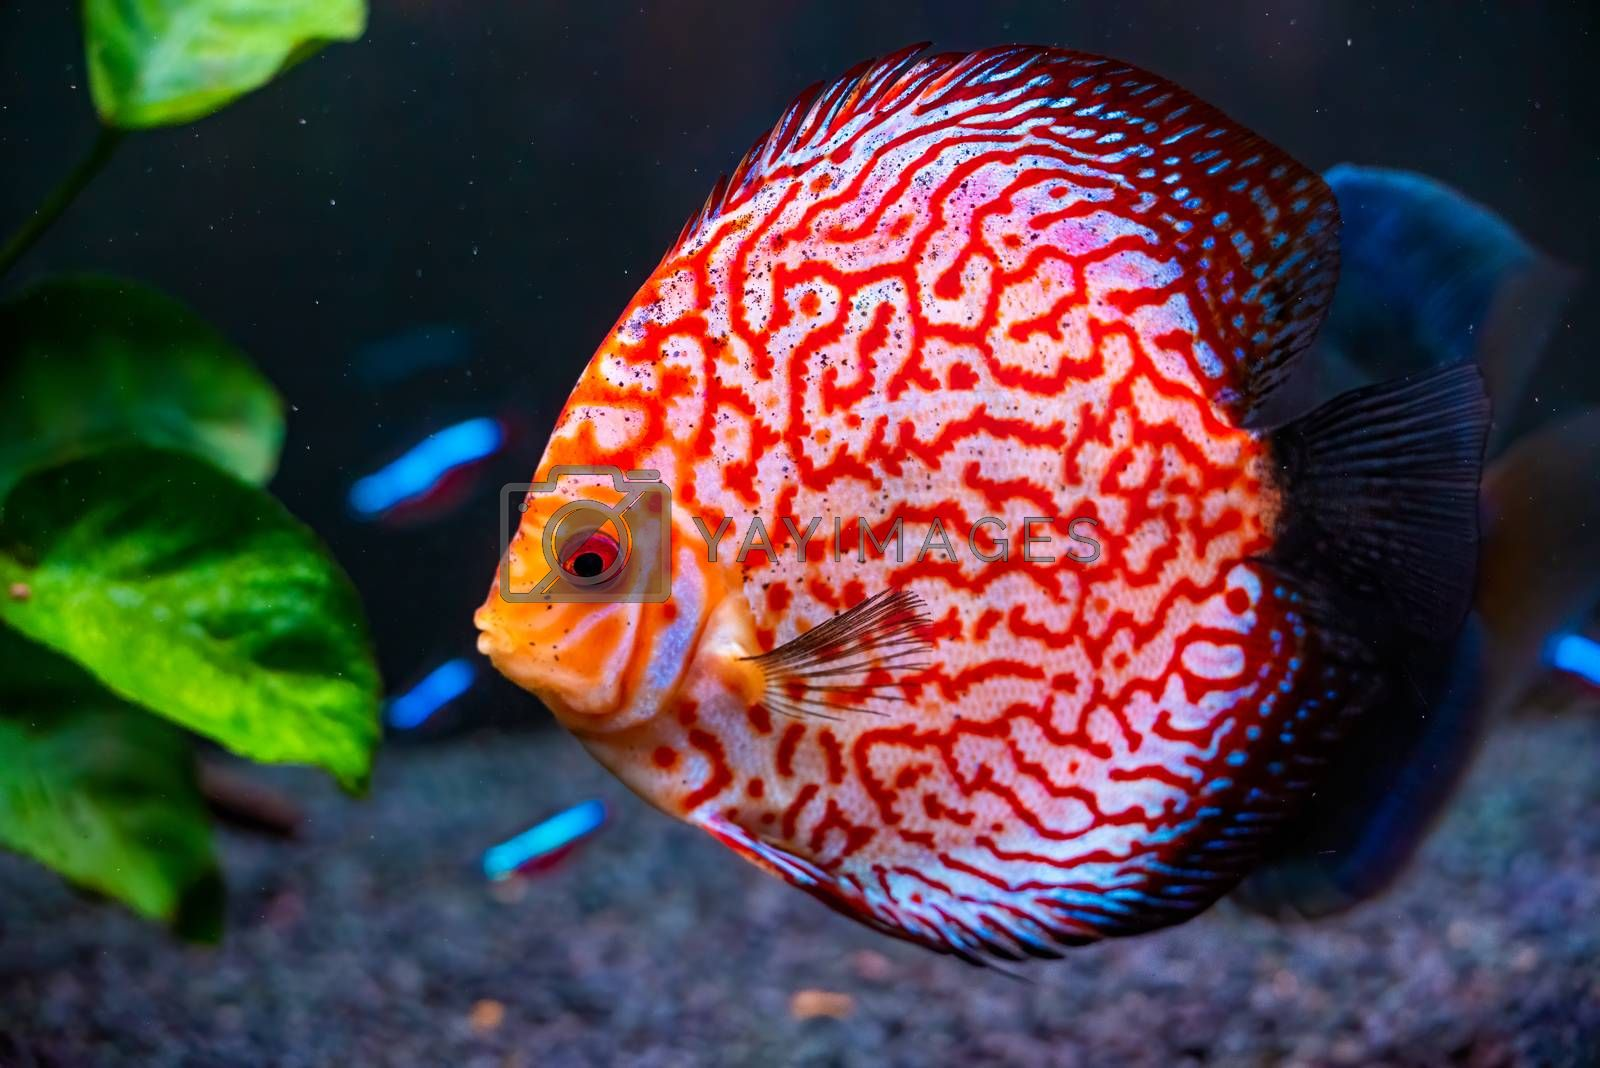 Closeup of a checkerboard red tropical Symphysodon discus fish. by Madphotos